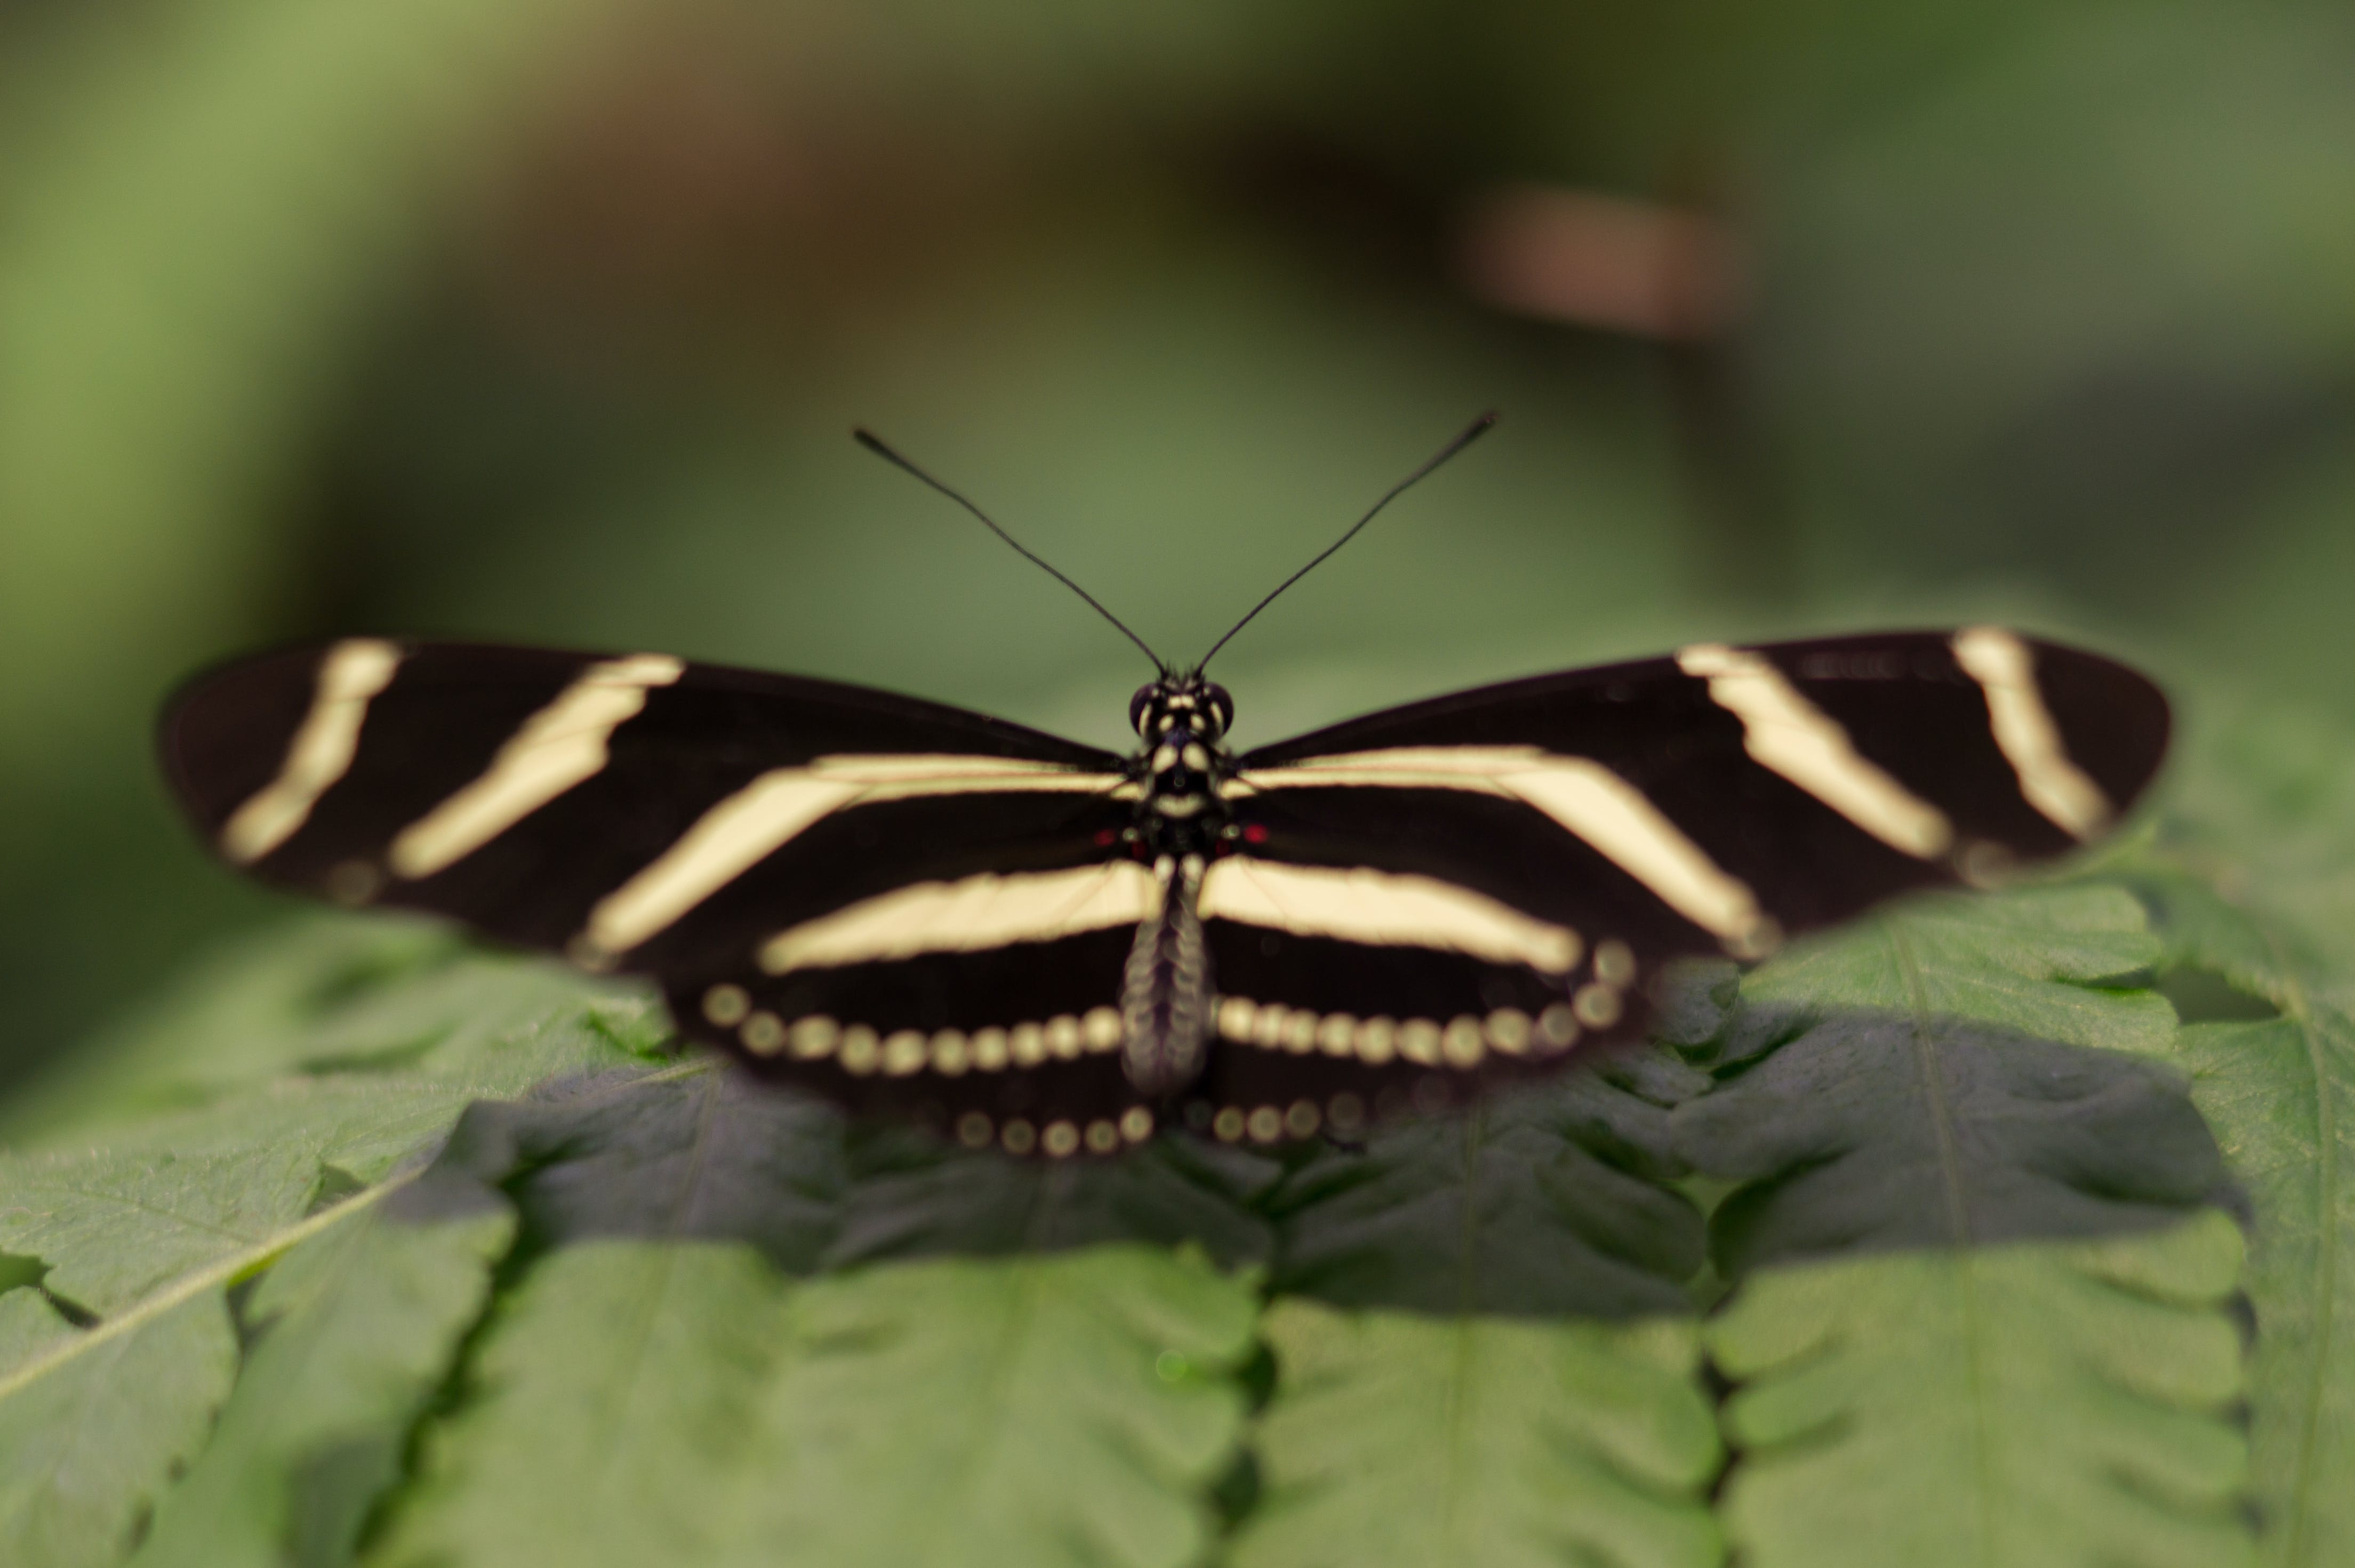 Closeup Photography of Black and White Butterfly Perching on Green Leaf